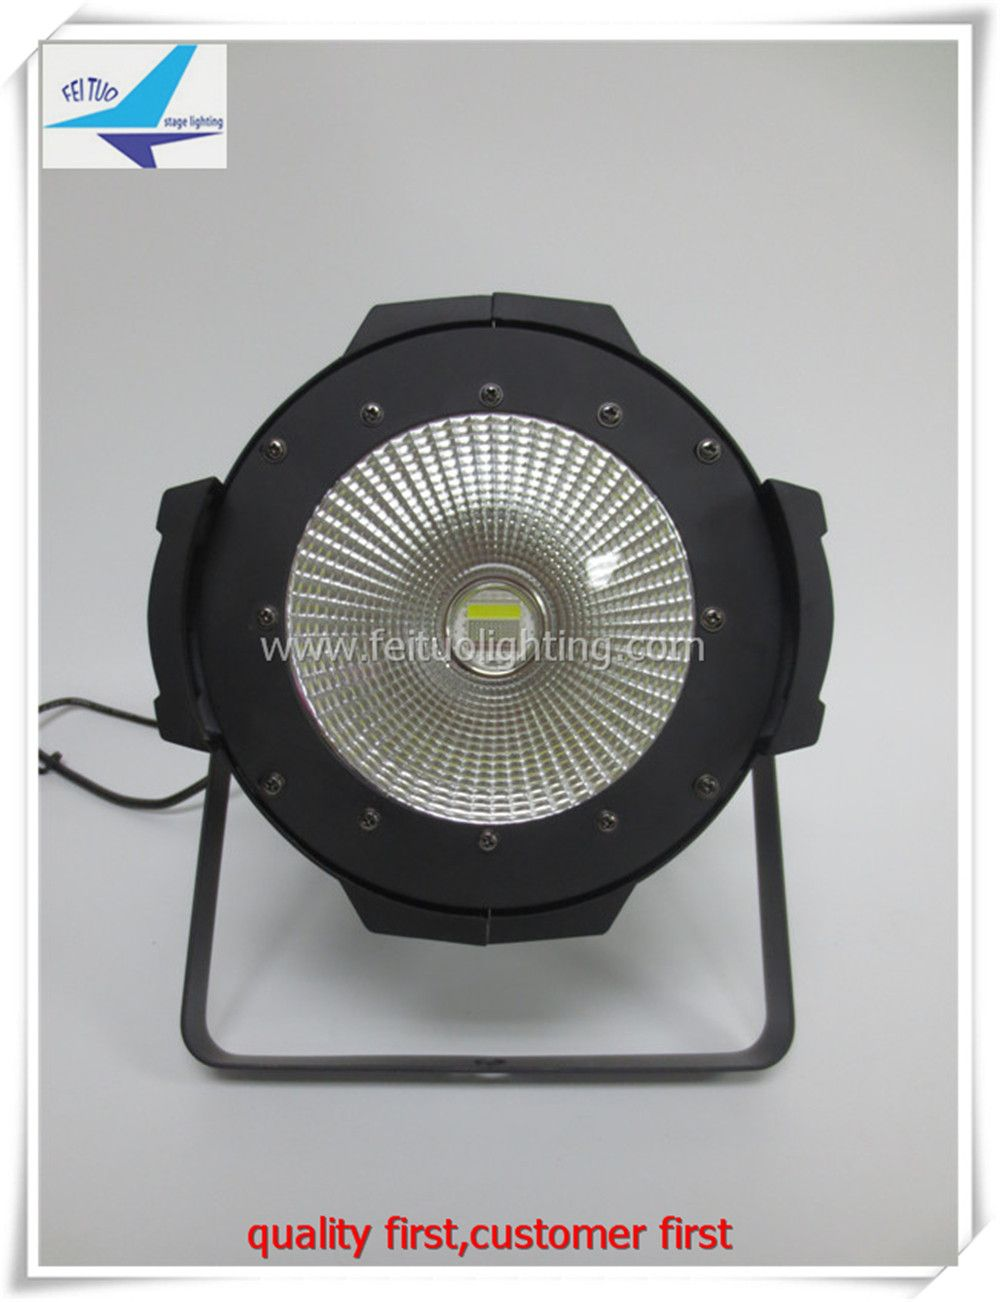 O 1xlot High Quality Stage Led Par Can Light 200w Warm White Or Cool White Indoor Cob Led Par With Images Commercial Lighting Led Stage Lights Stage Lighting